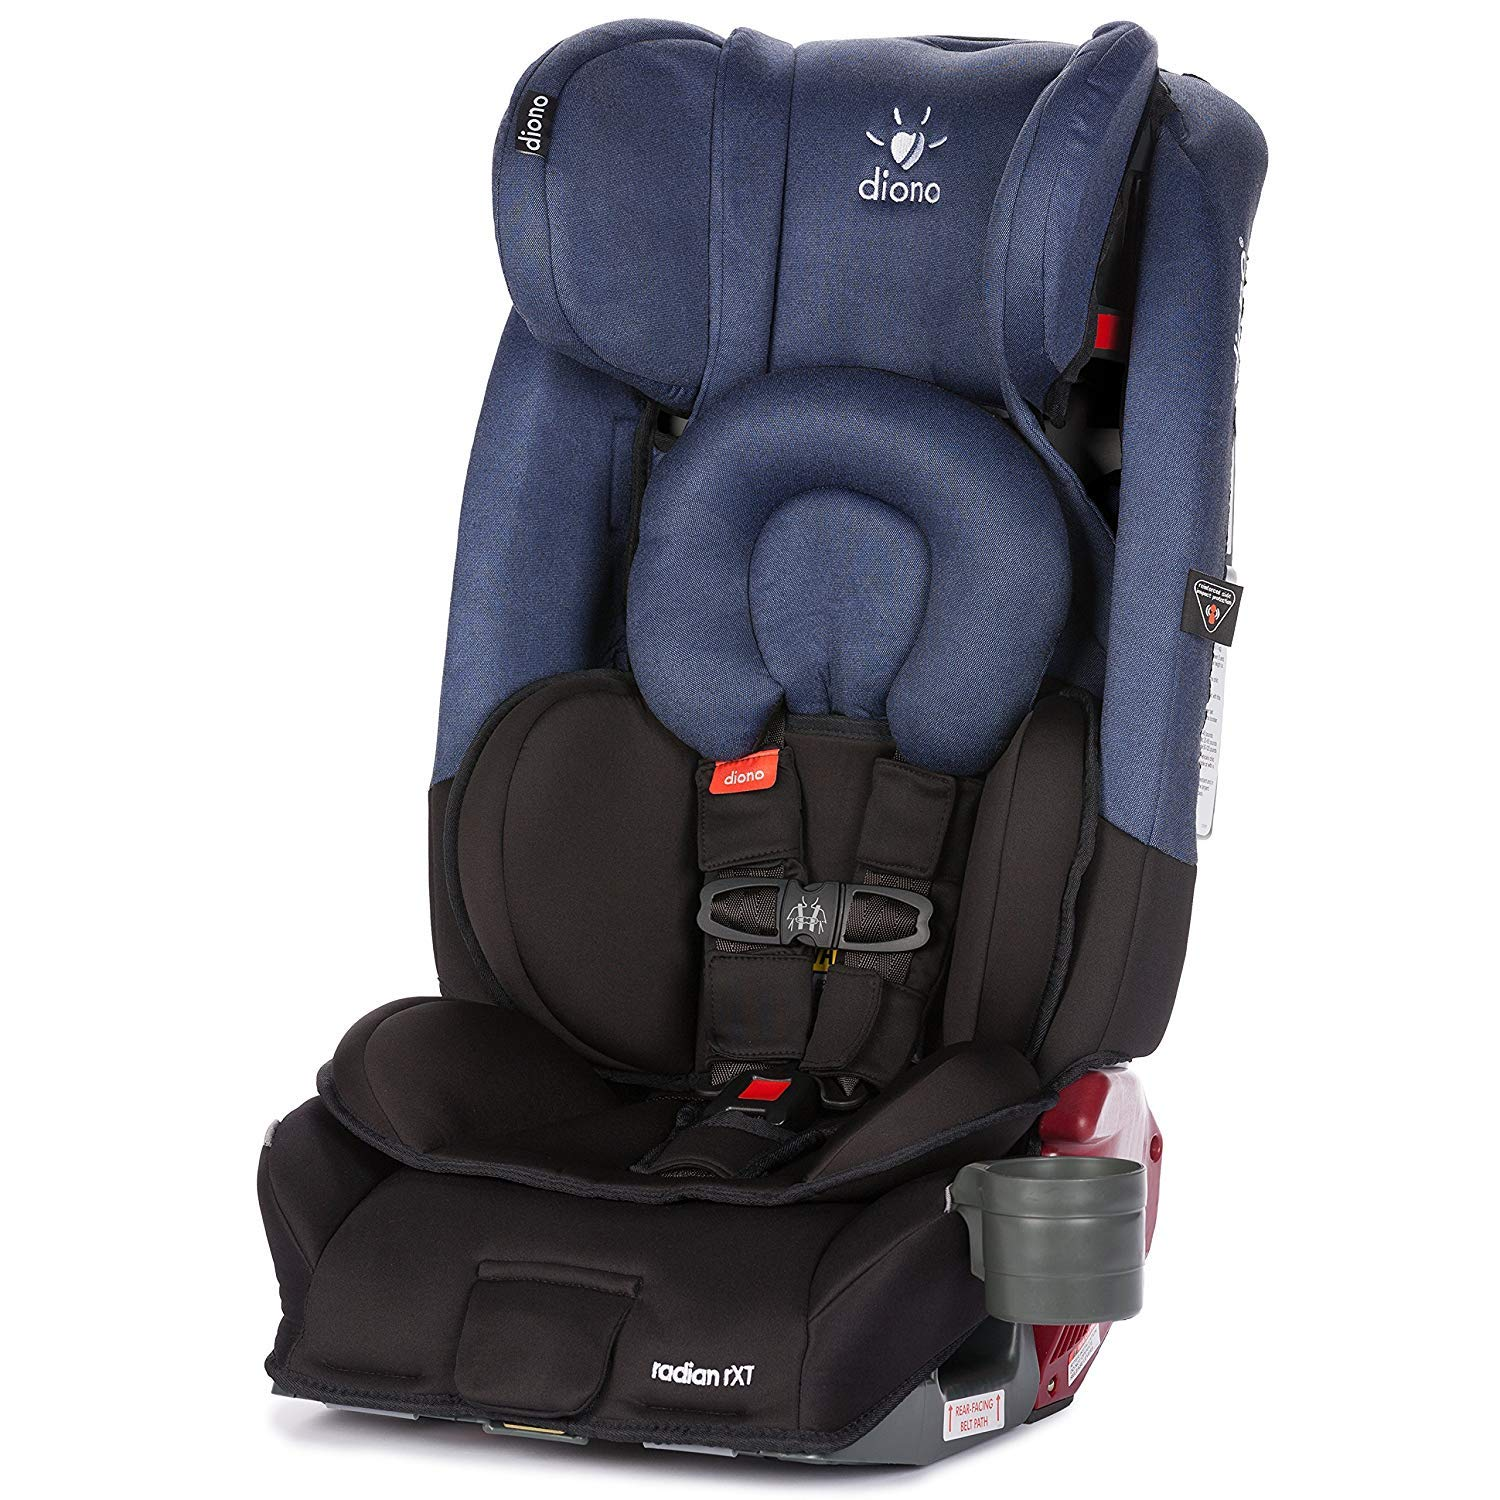 Diono Radian 3RXT All-in-One Convertible Car Seat, for Children from Birth to 120 Pounds, Blue 50014